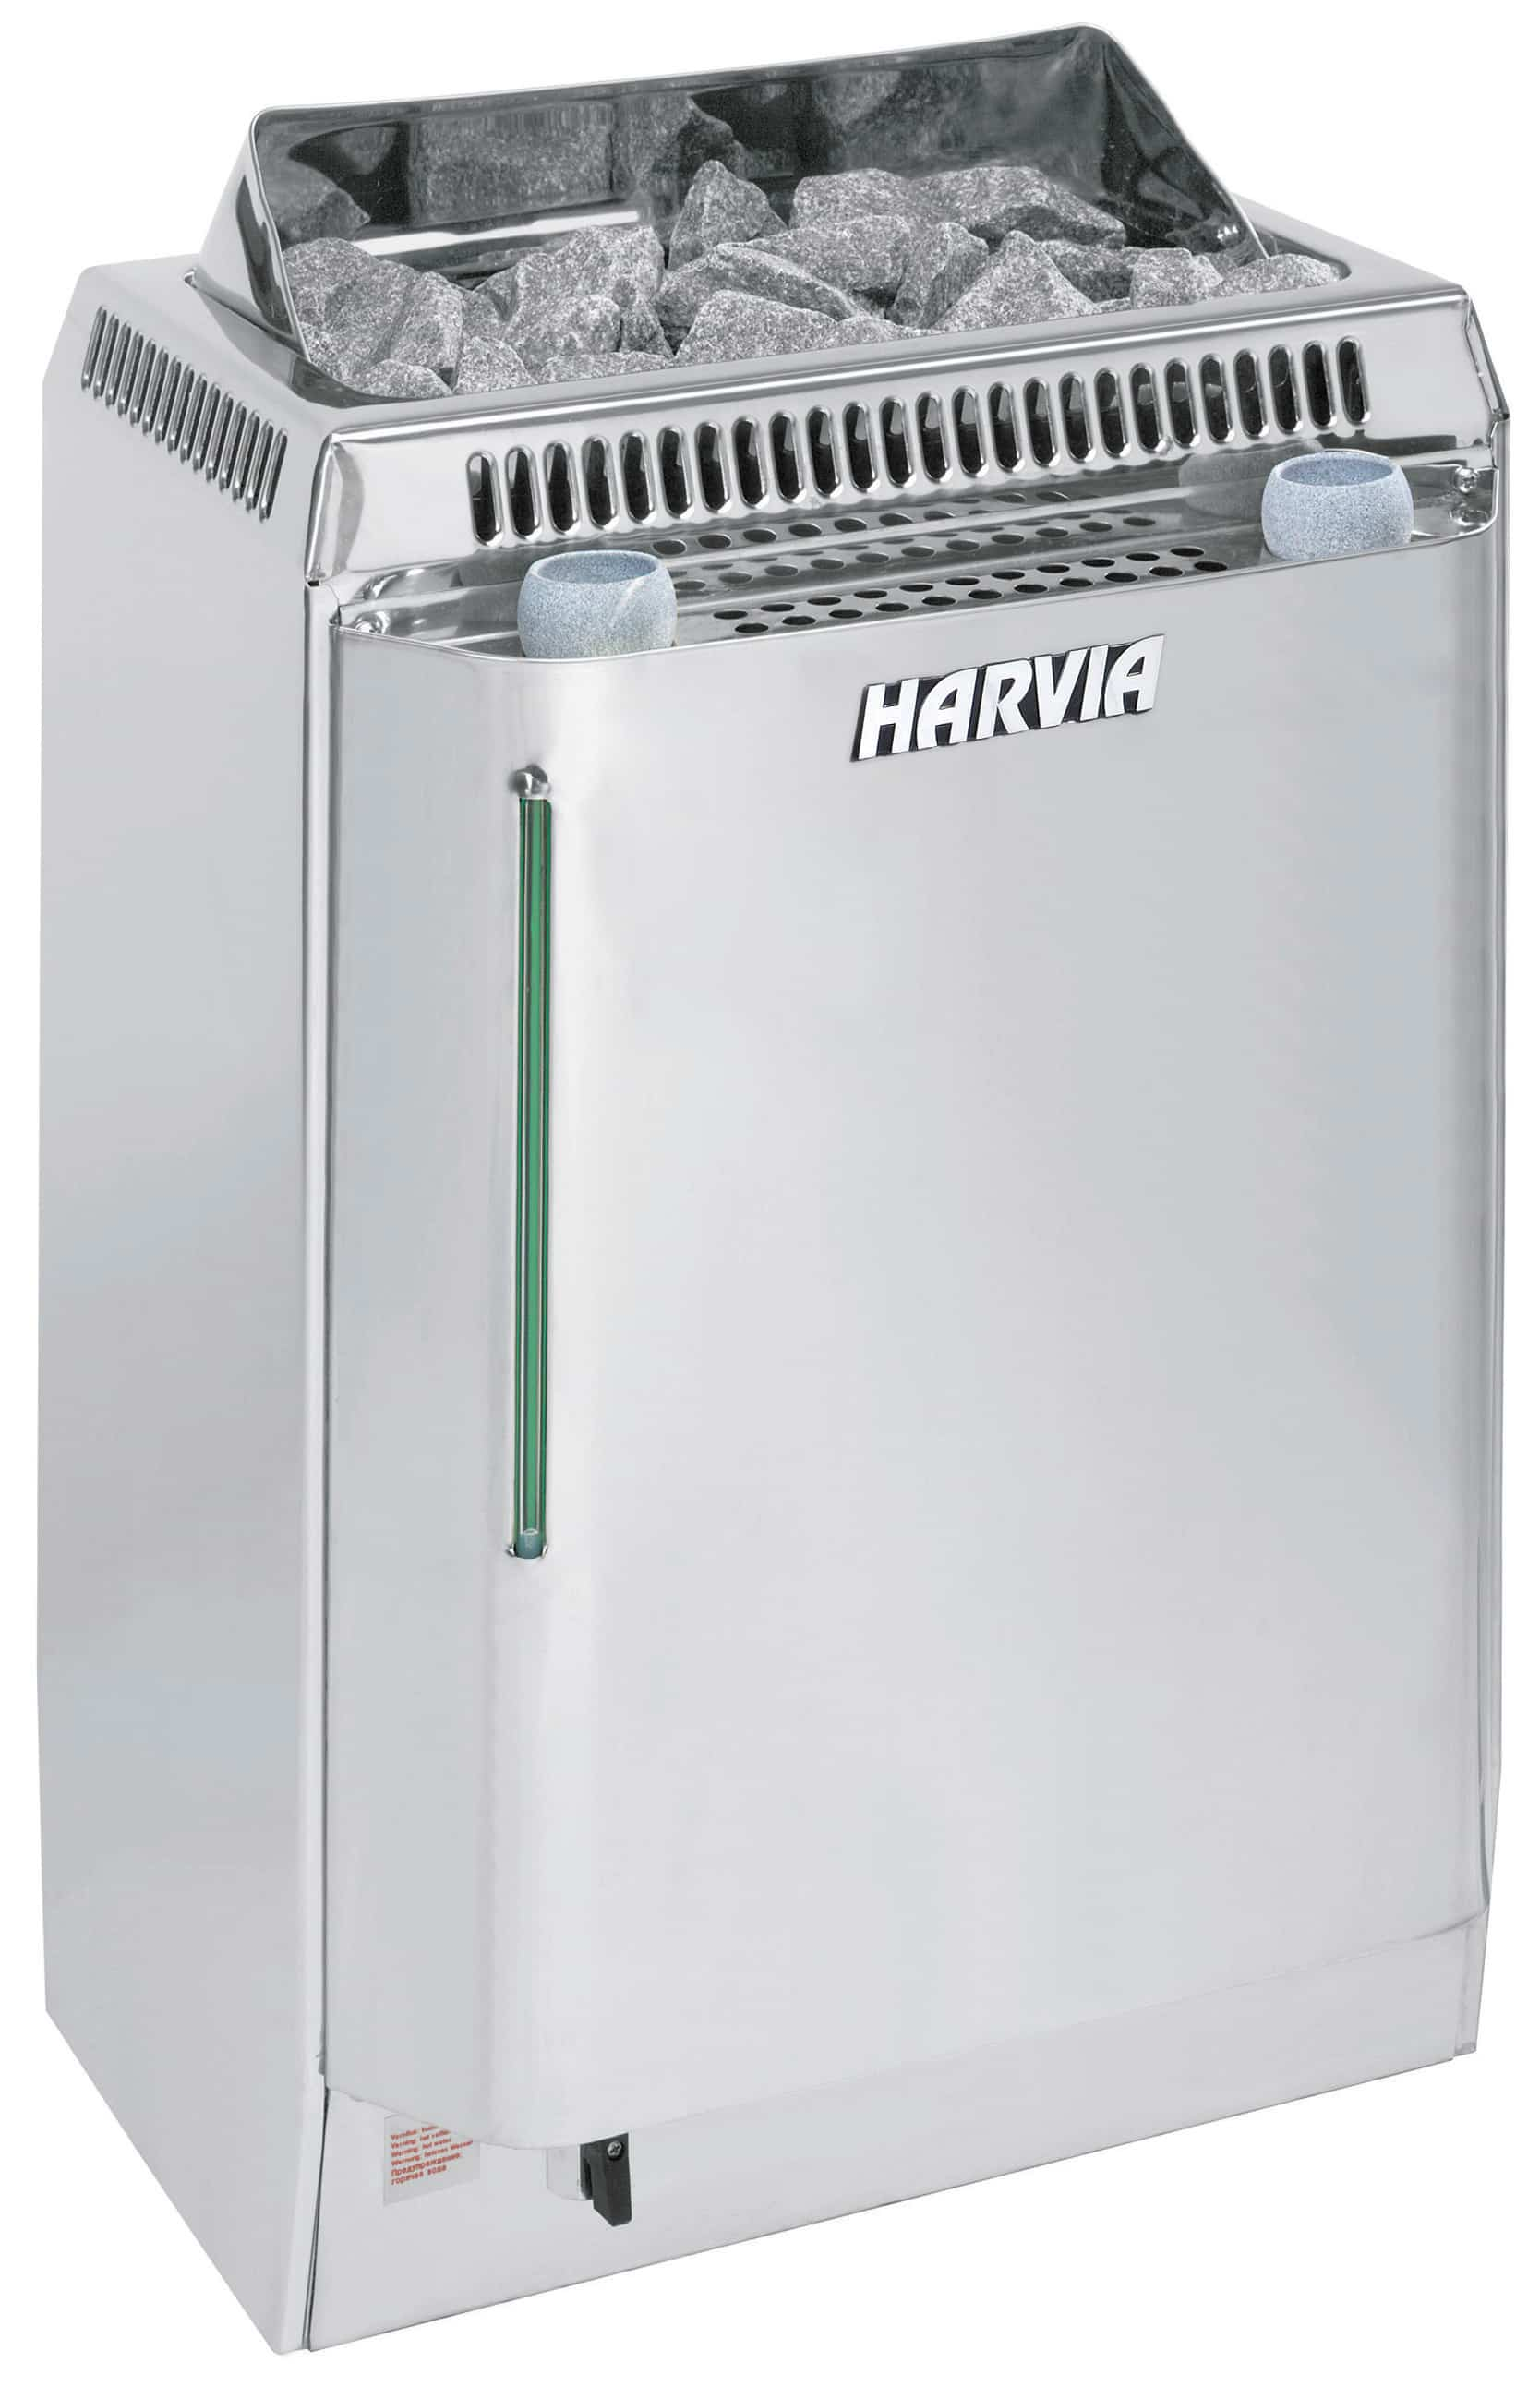 HARVIA Topclass Combi Automatic KV90SEA